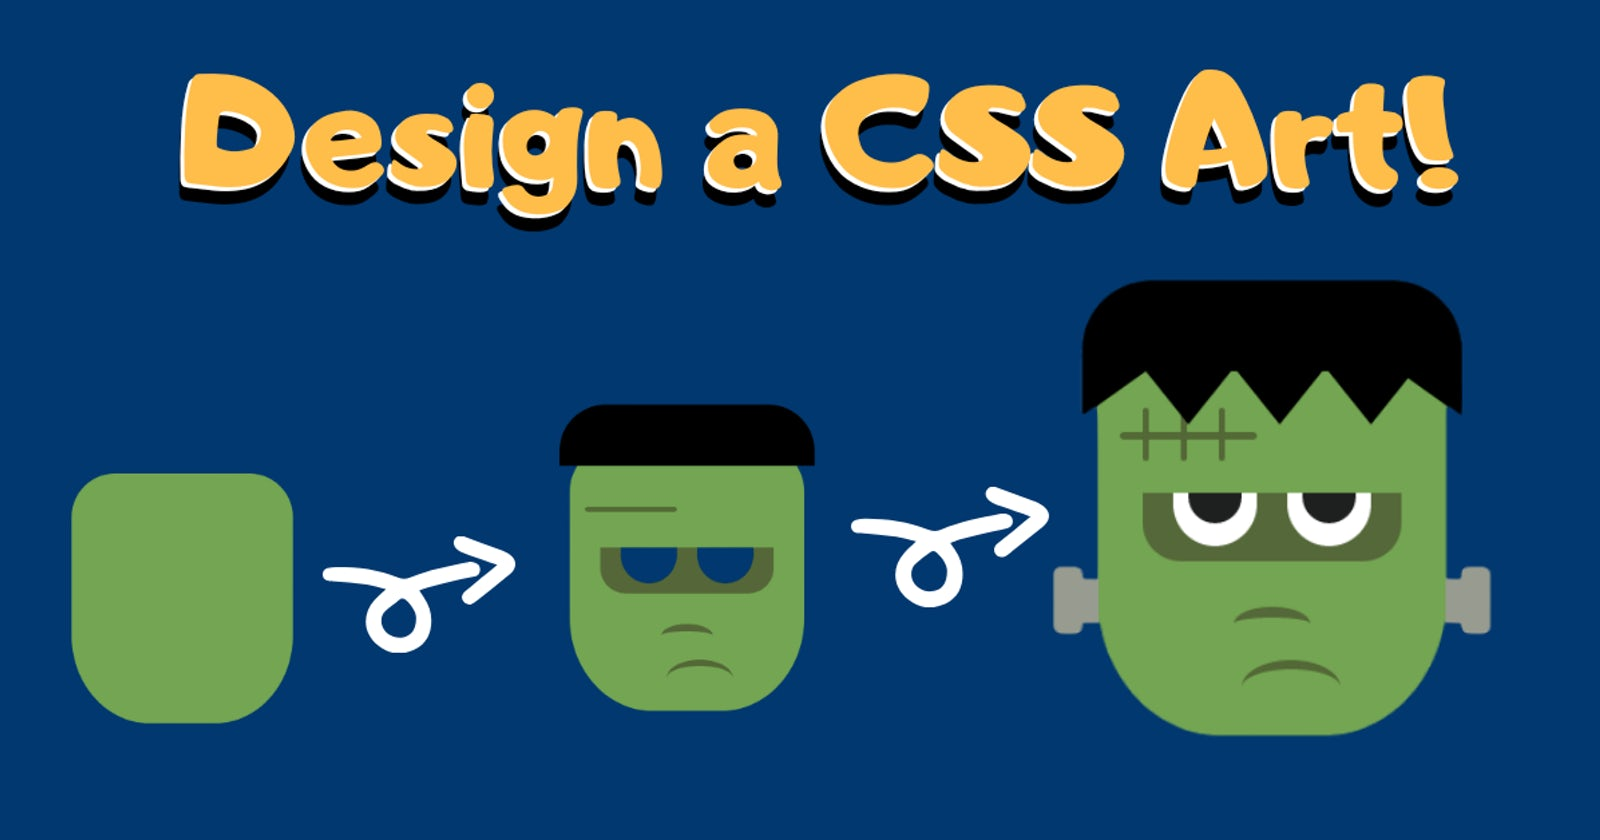 Design a CSS Art-(Frankenstein)